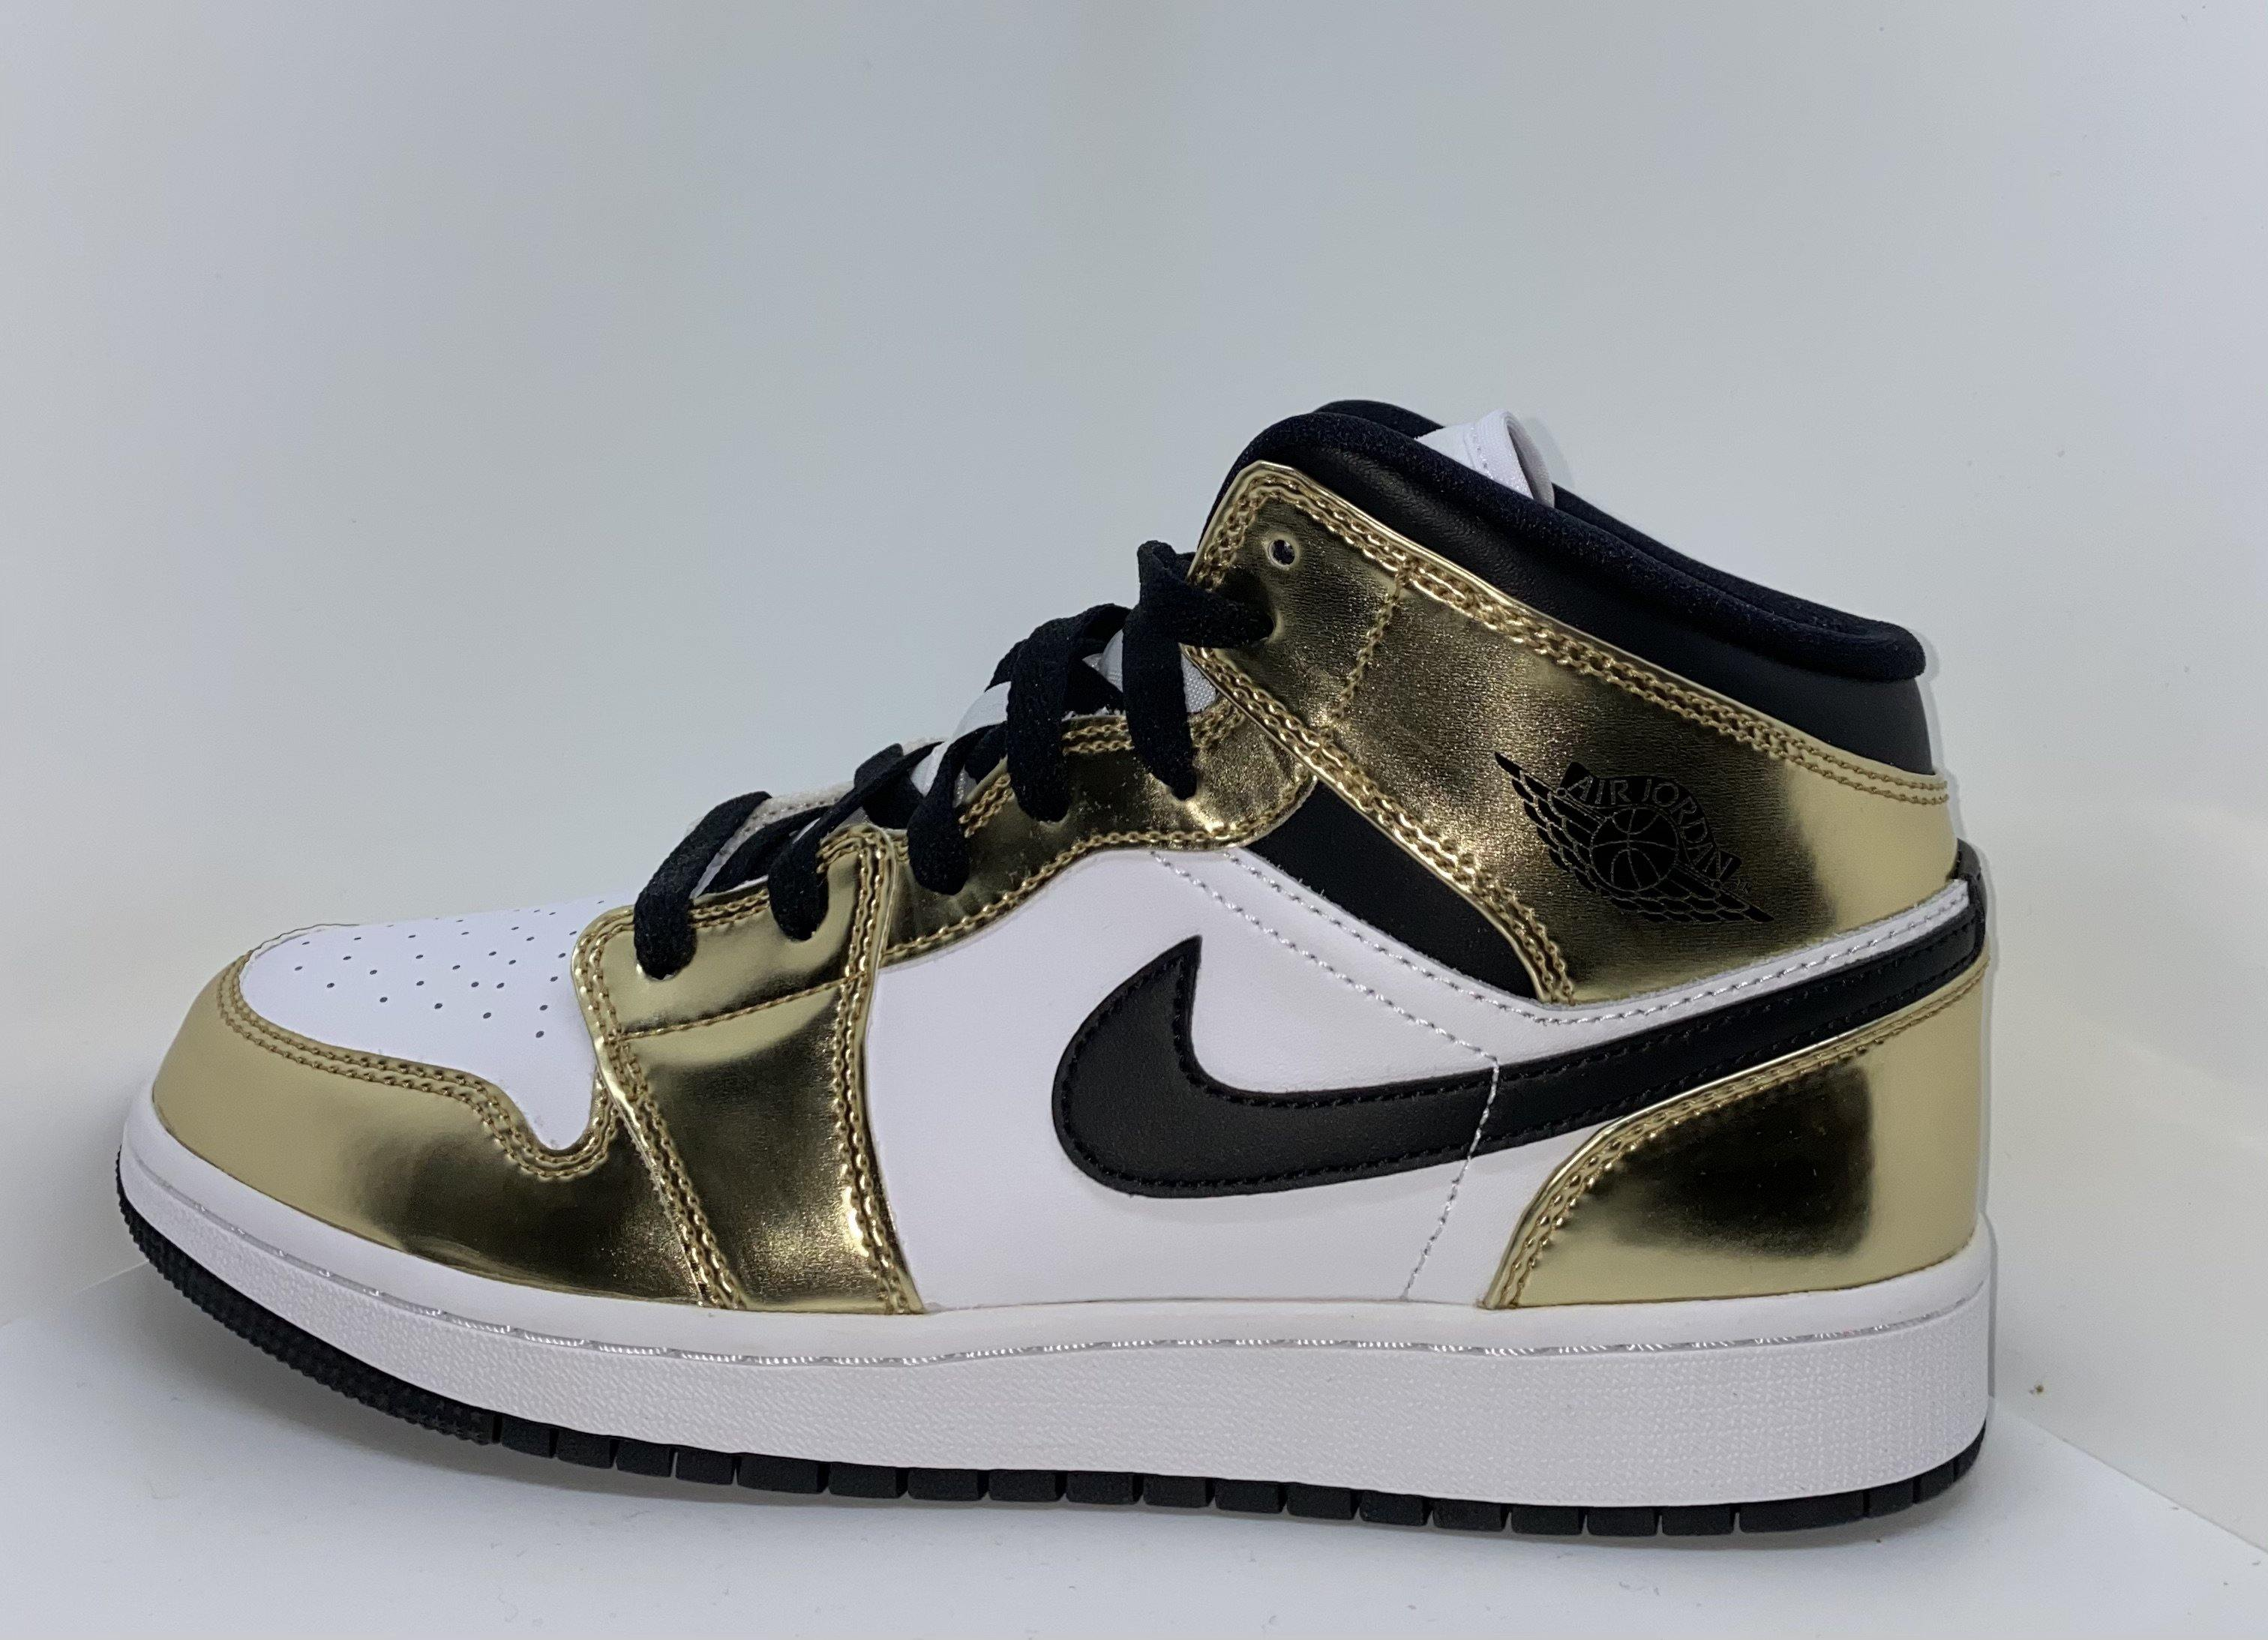 Air Jordan Metallic Gold - Exclusive Shoes